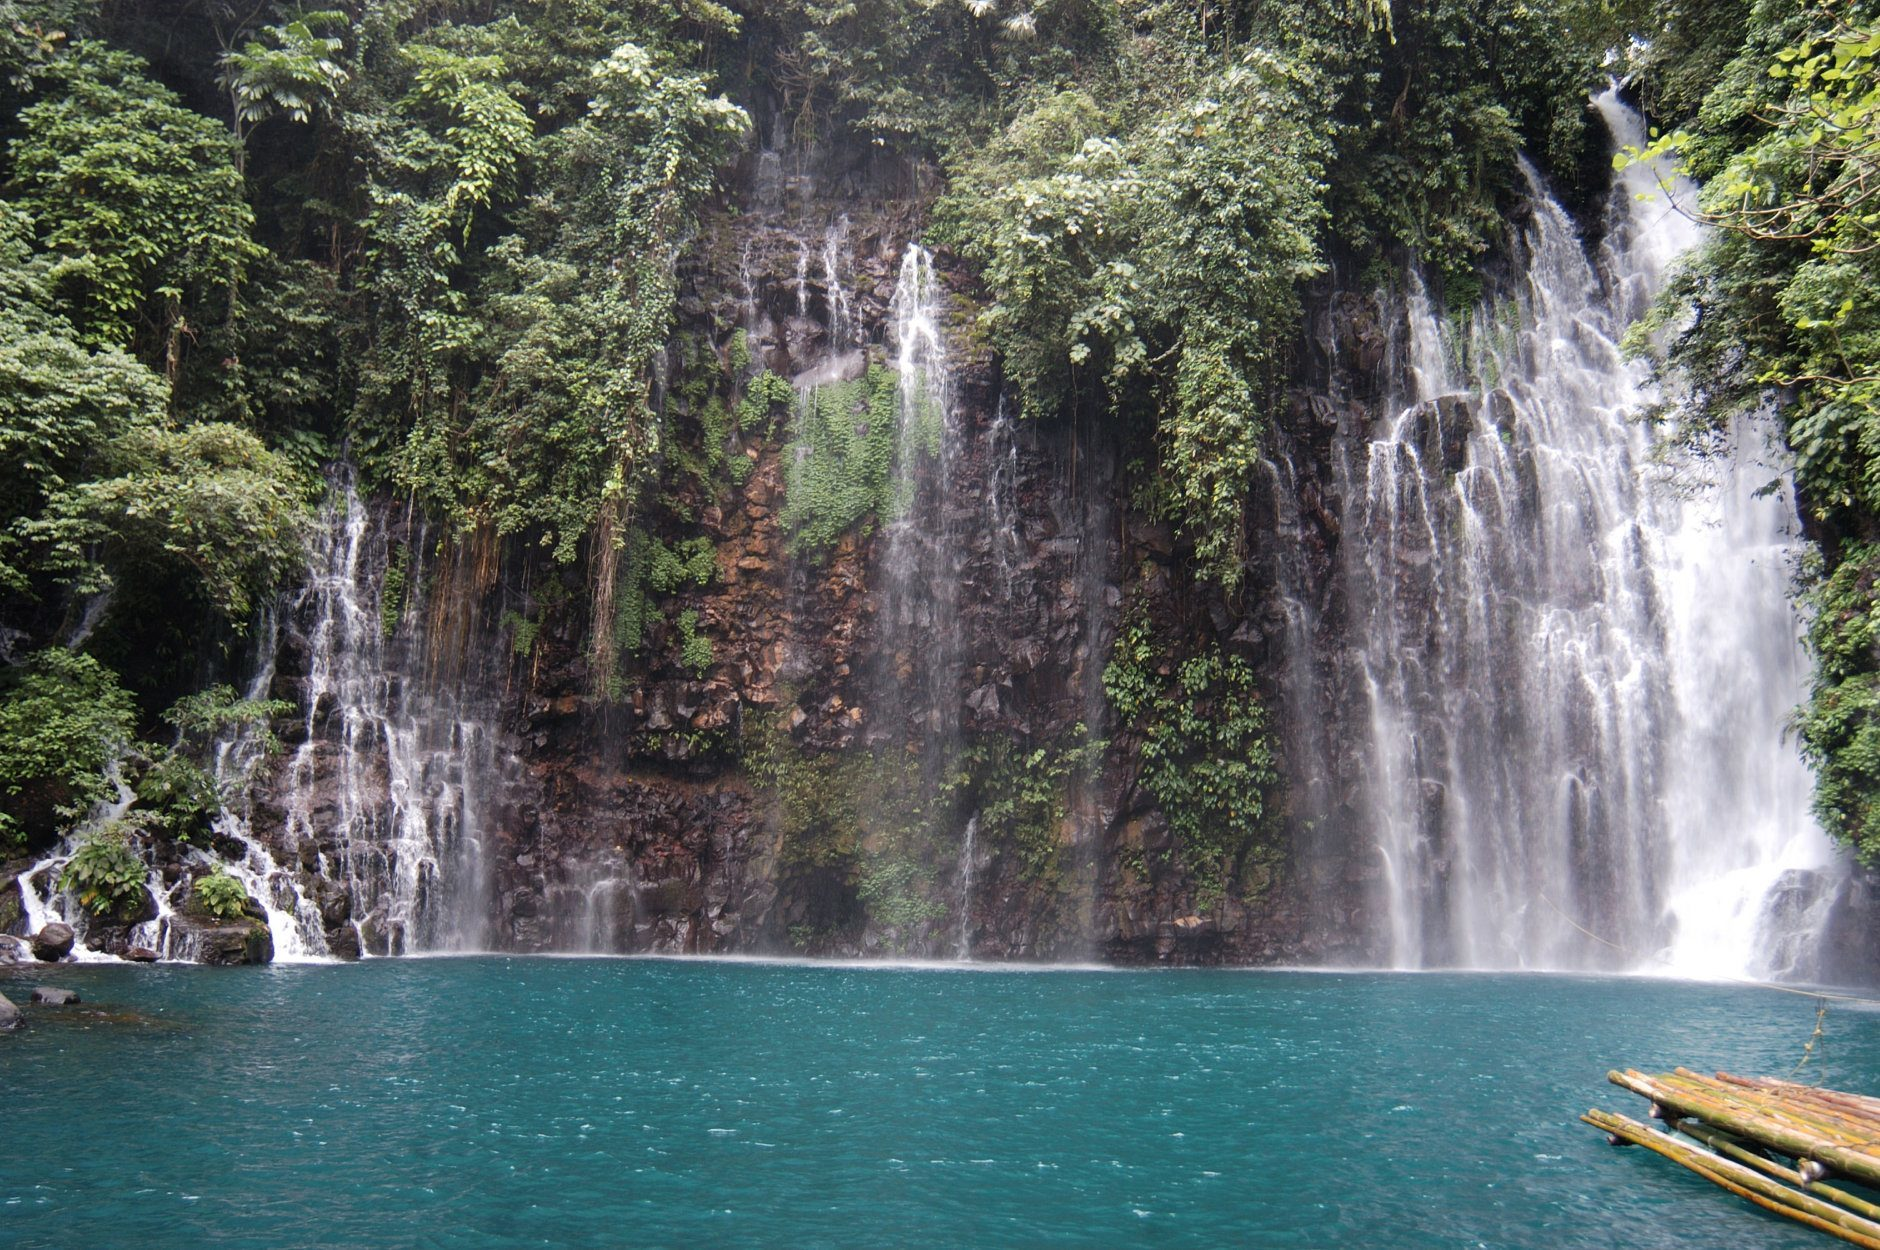 Tinago means hidden. Tinago falls is situated in a deep raven in, Ditucalan, Iligan City, Mindanao,Philippines